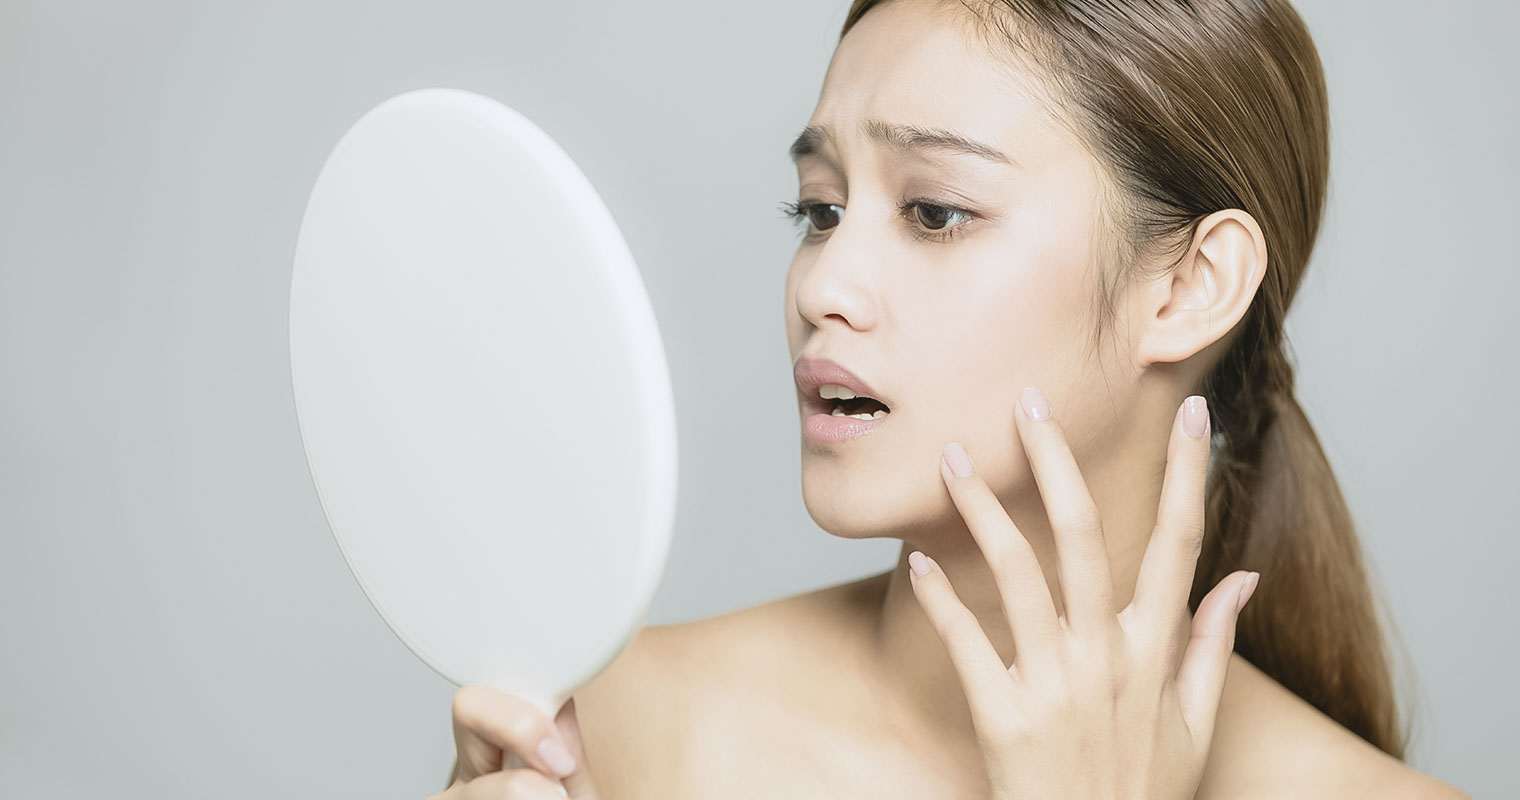 Woman looking into a mirror worried about her skin condition